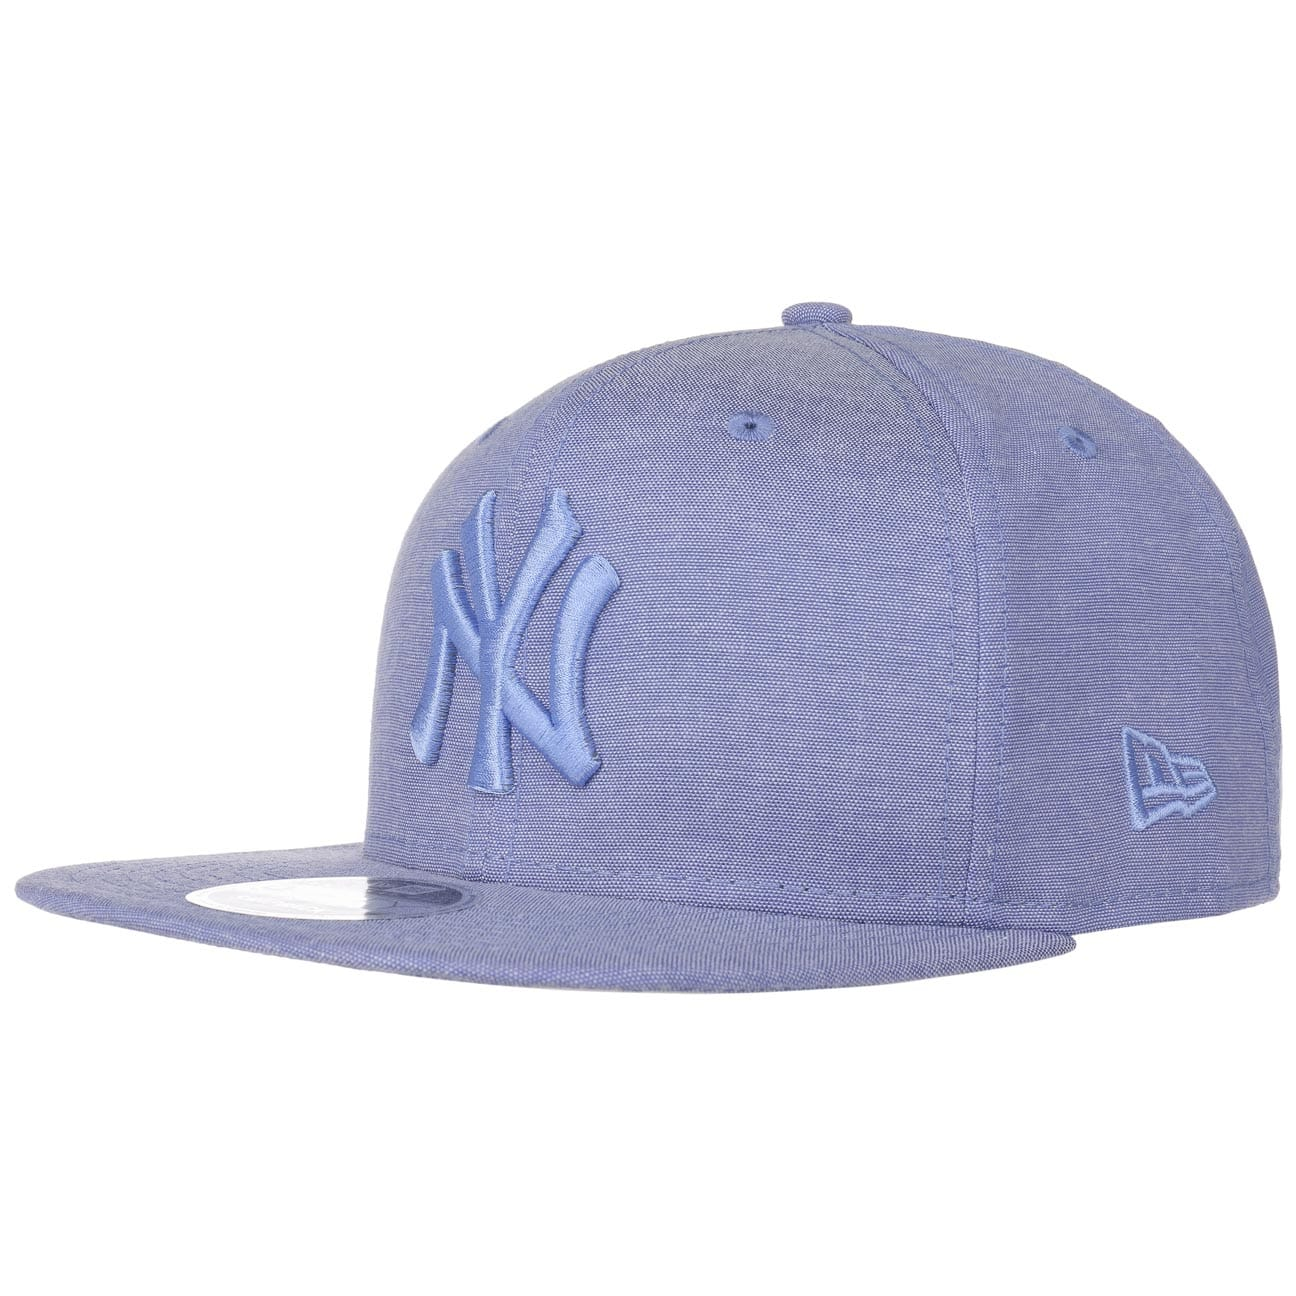 Casquette 9Fifty Oxford Yankees by New Era  baseball cap